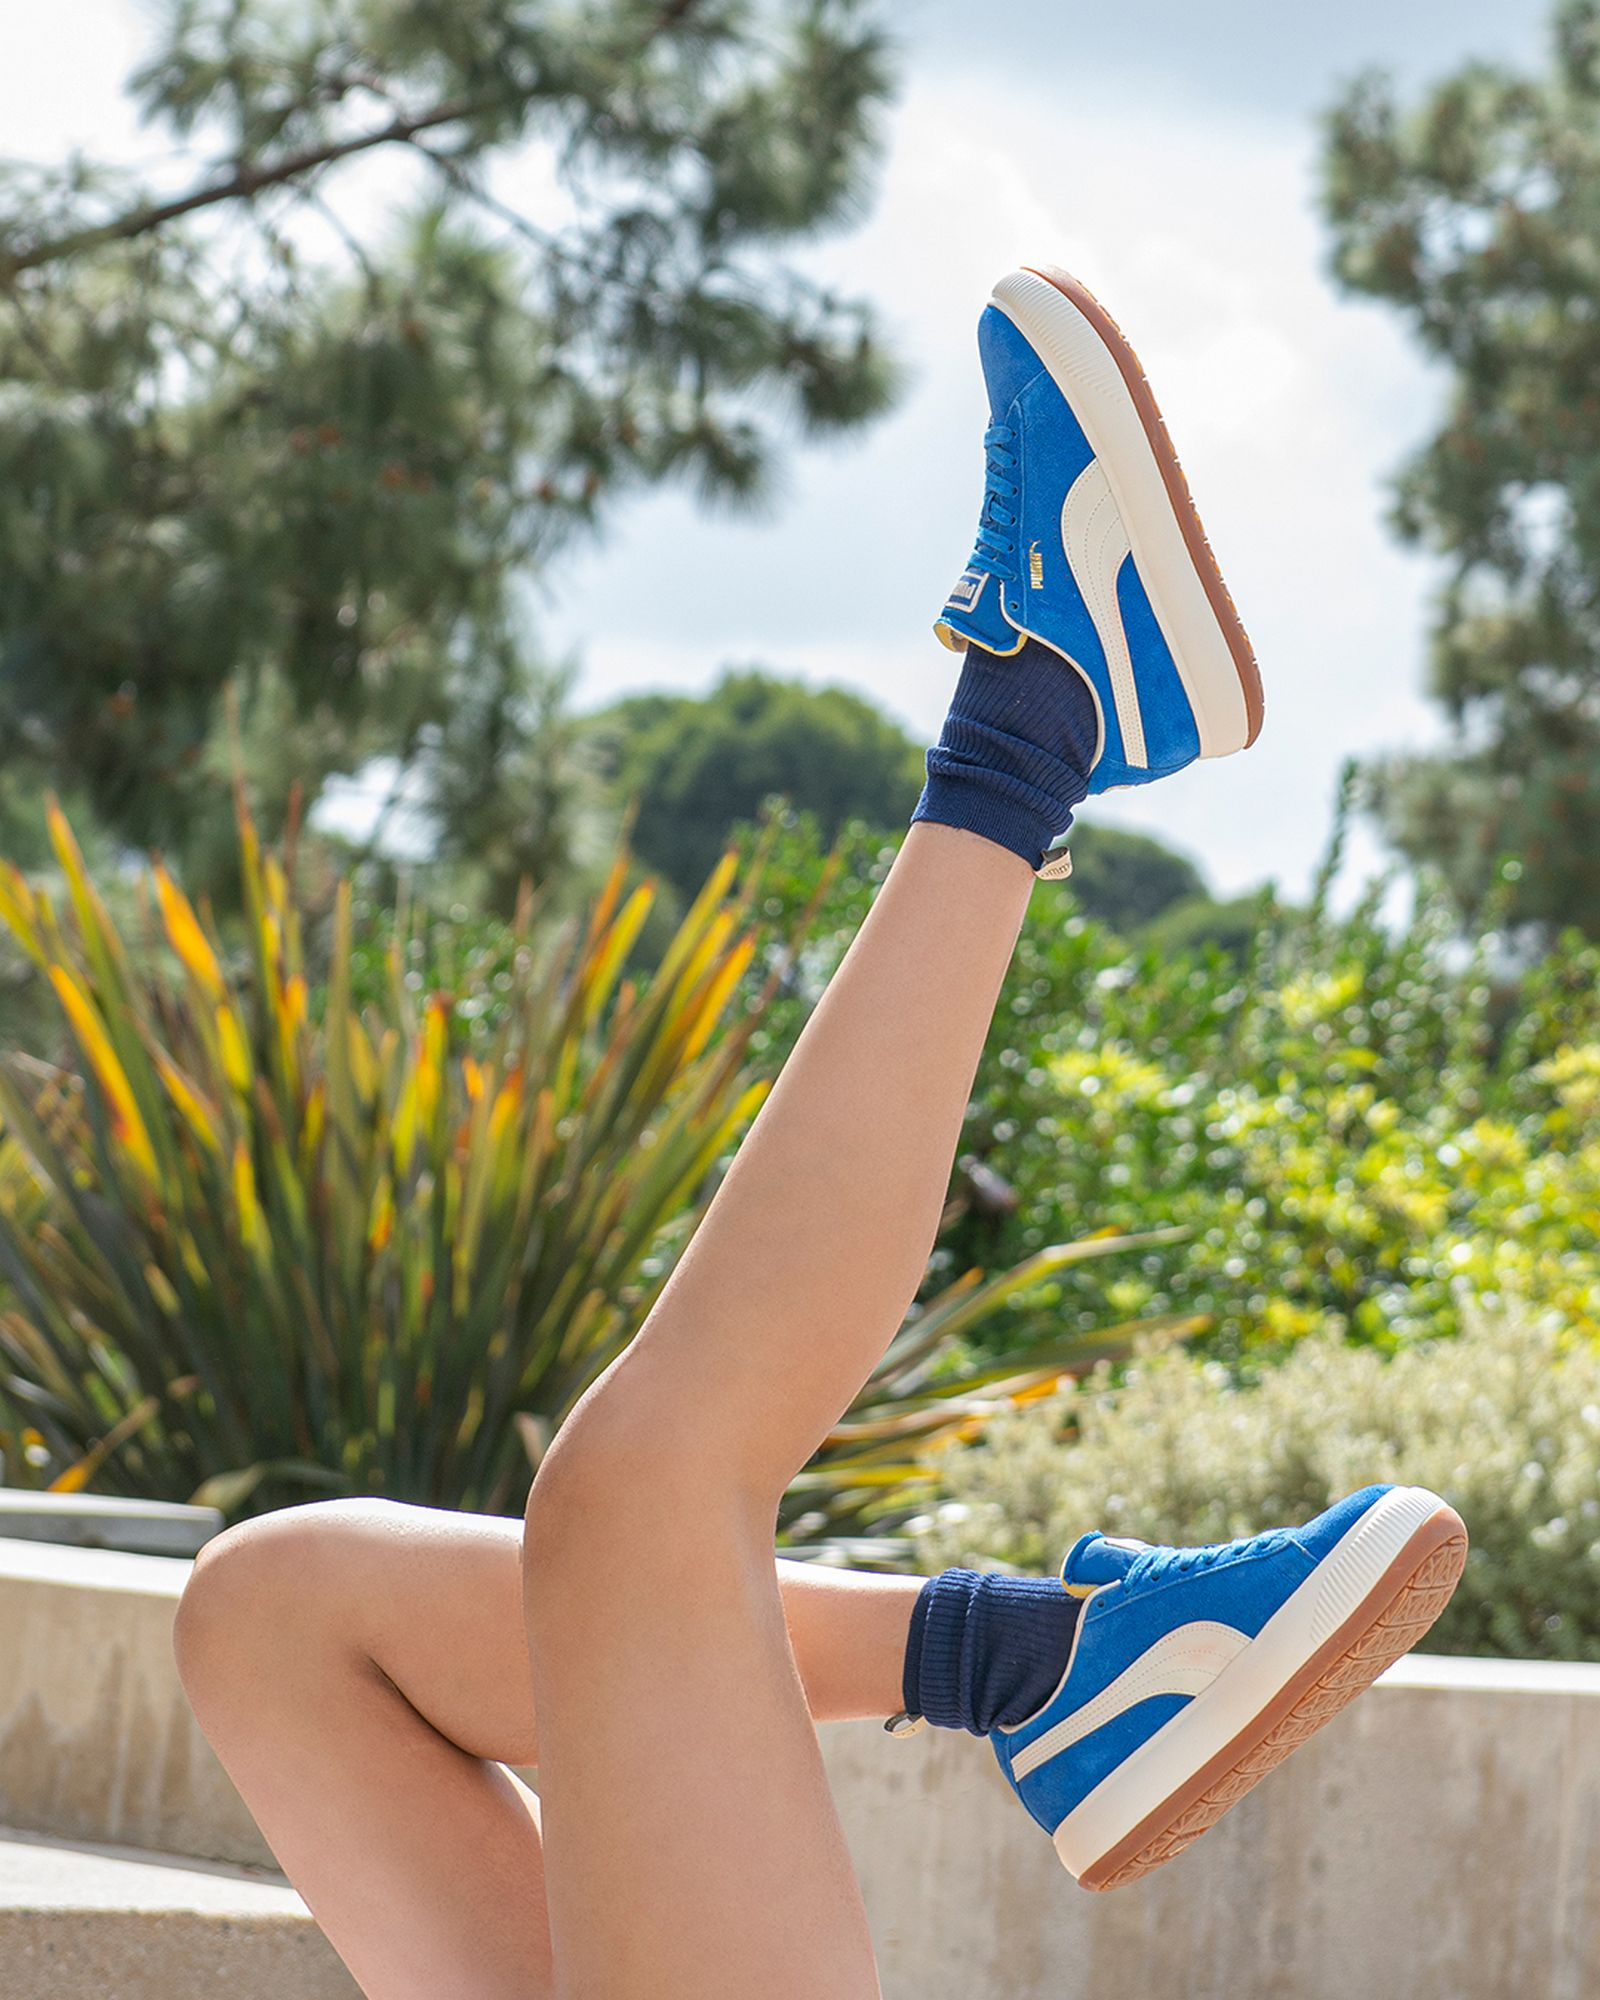 on feet photo of the Puma Suede Mayu Up - lapis blue/marshmallow - 381650 01